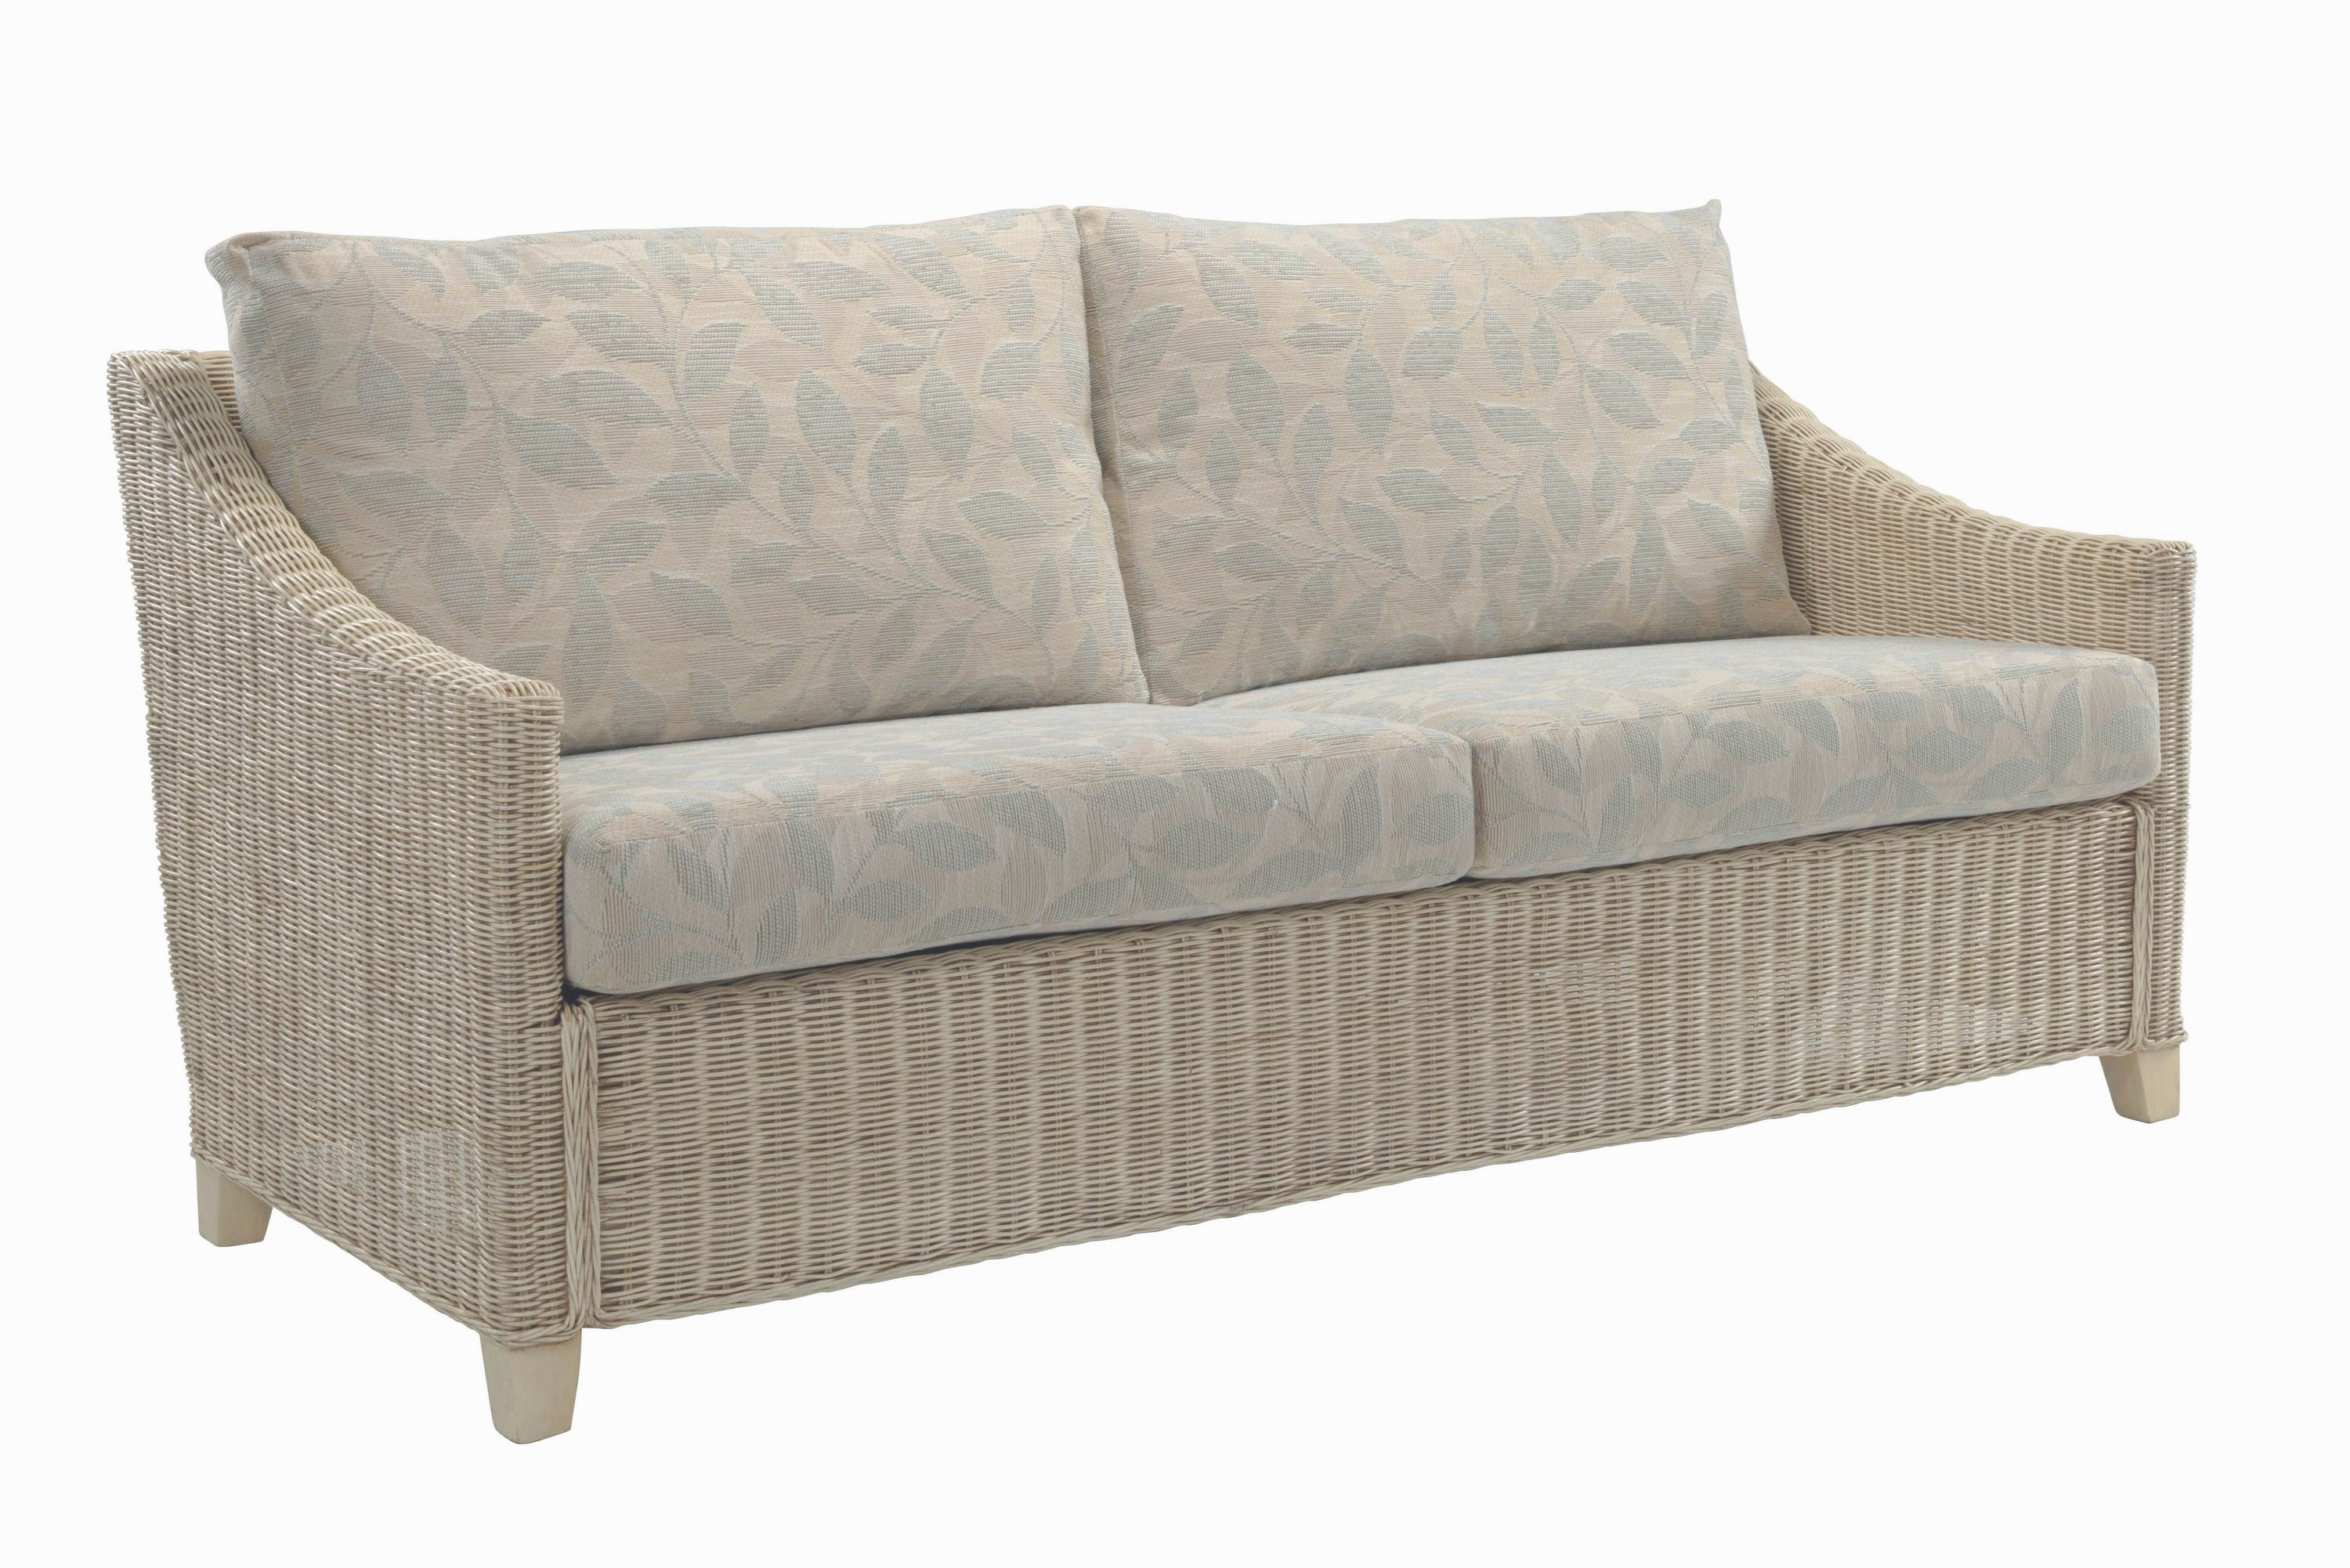 Desser Dijon 3 Seater Sofa Sold by Highgate Furniture Southend On sea Essex